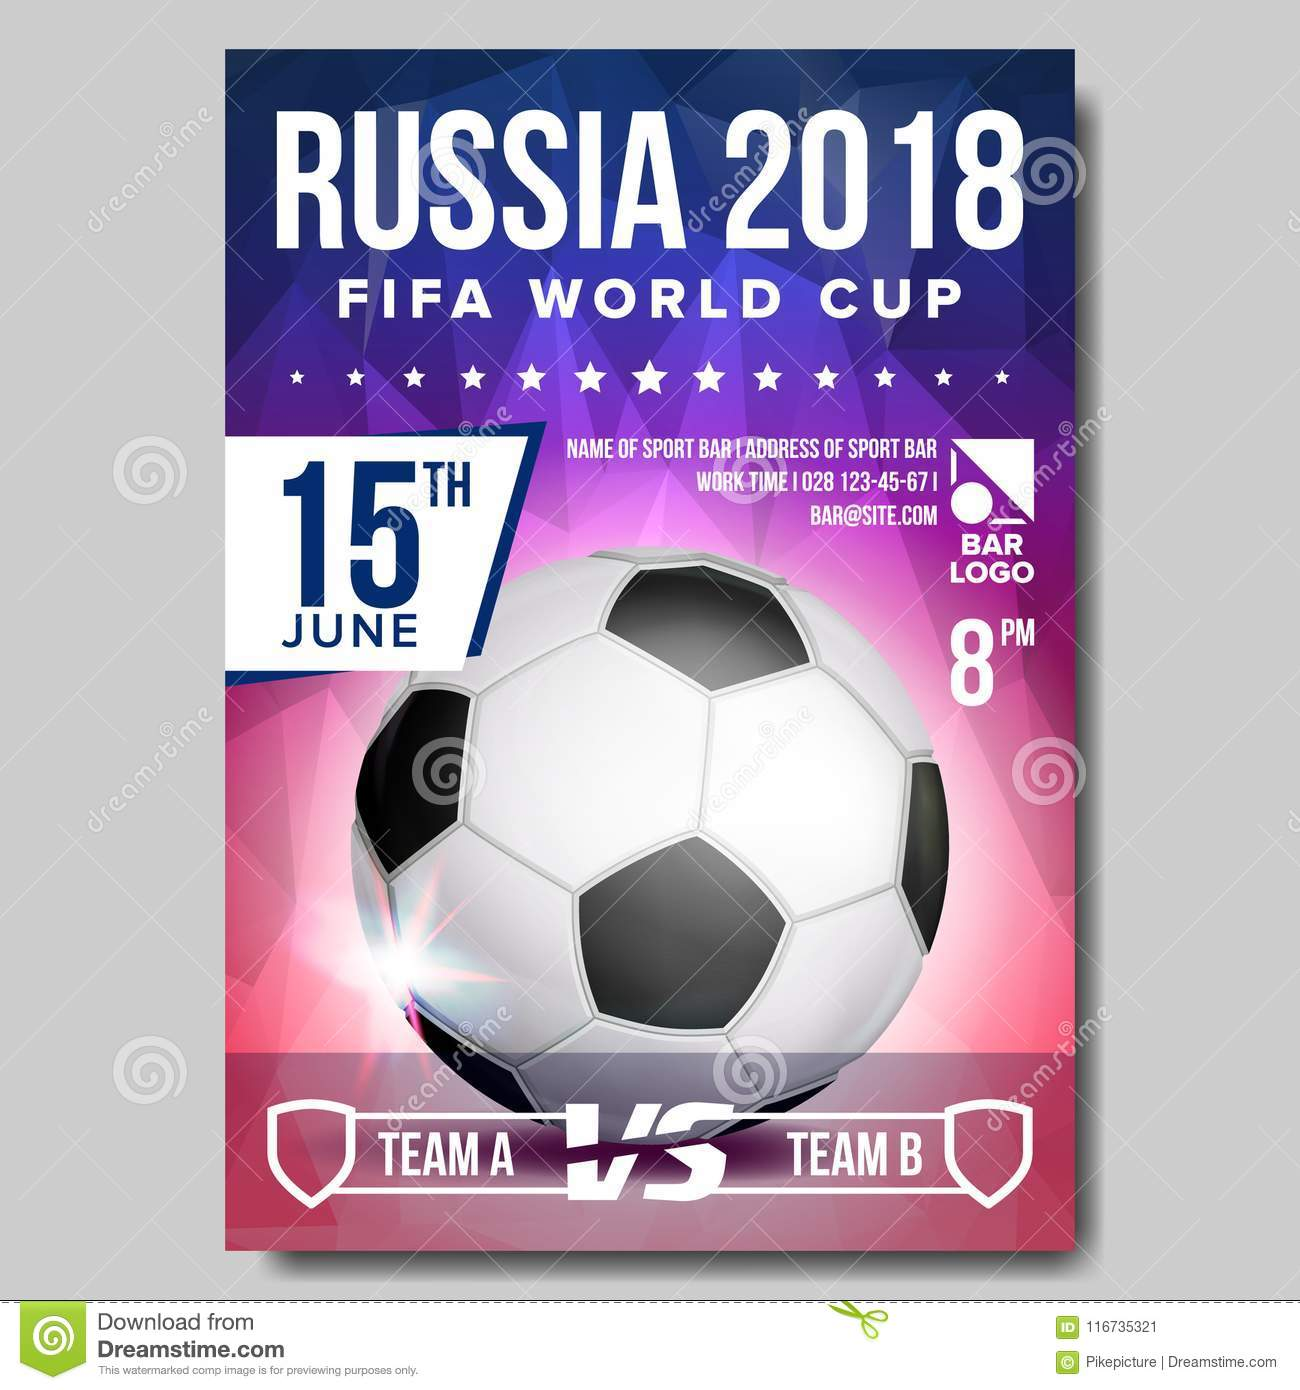 9d8e06b00 2018 FIFA World Cup Poster Vector. Russia Event. Soccer Banner Advertising.  Sport Event